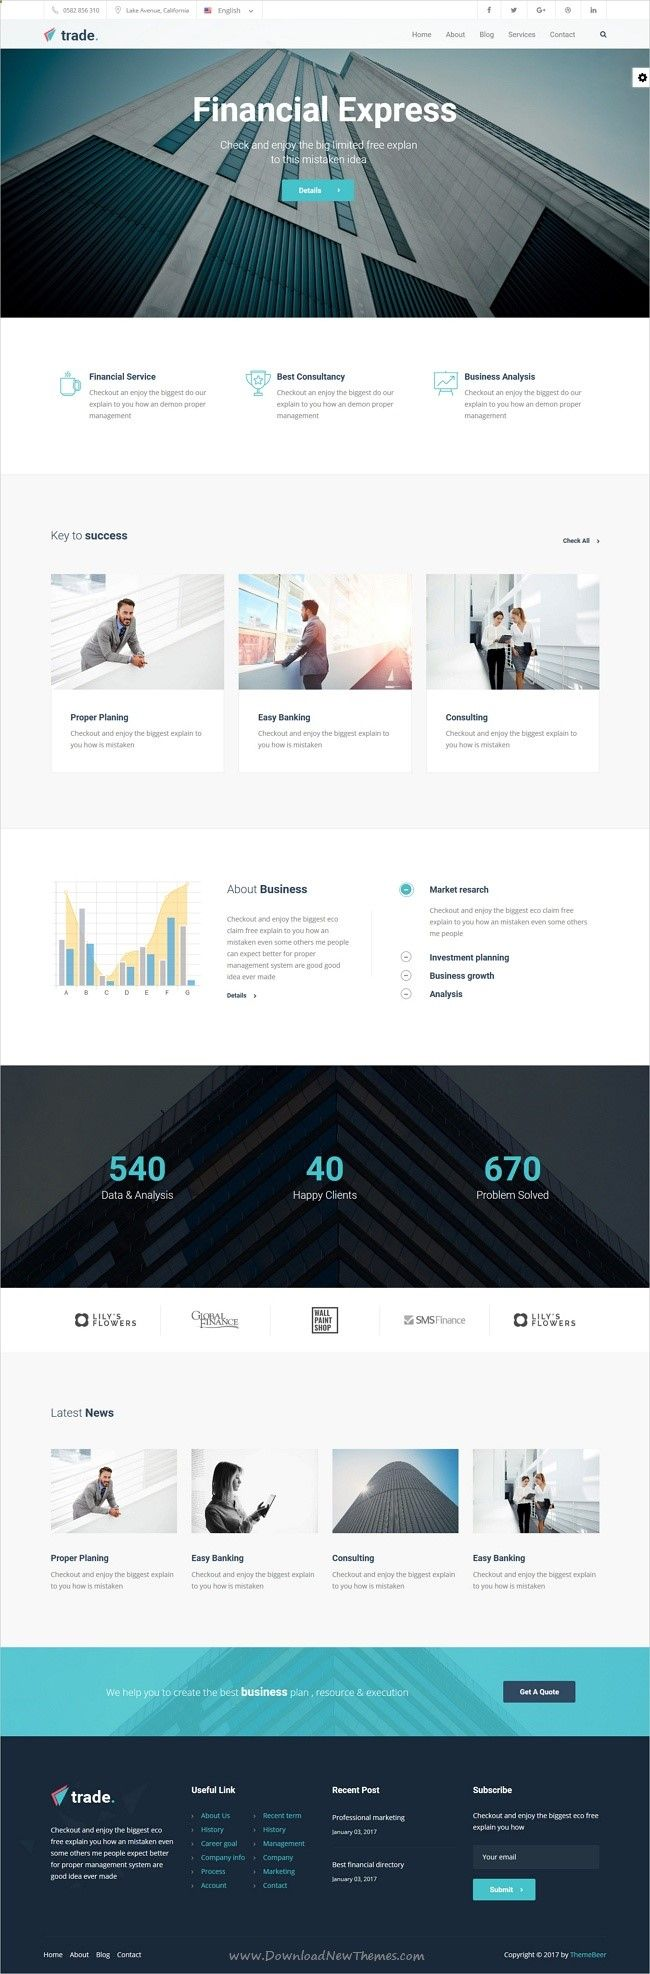 consulting firm cover letter%0A My Trade Finance Business  Trade is a beautiful responsive  WordPress  theme for  professional business  finance  insurance  accountant and   consulting